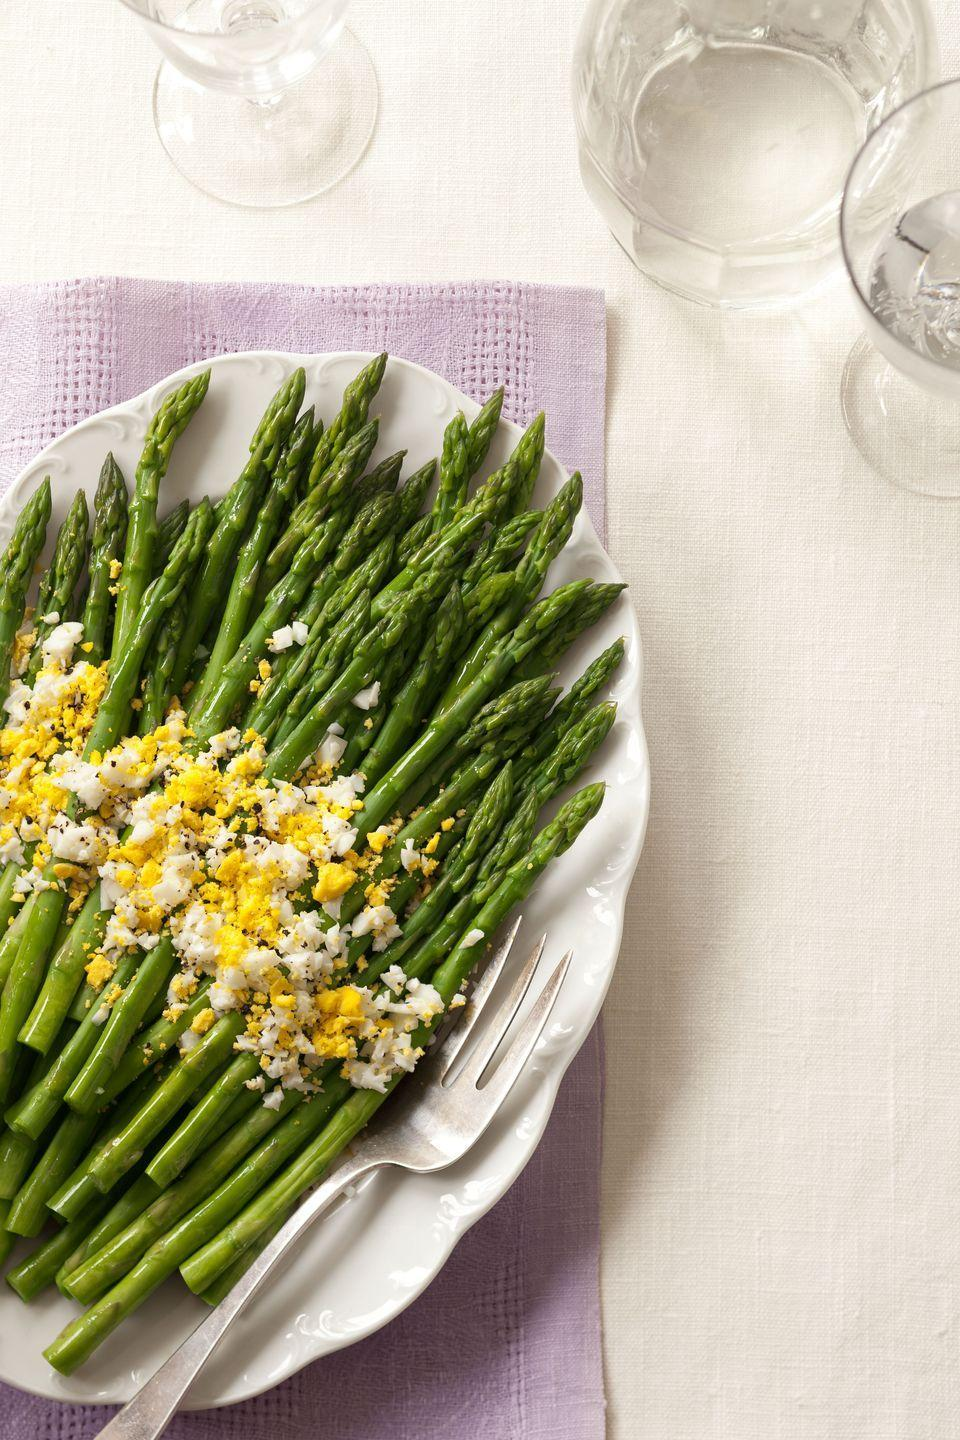 """<p>Bright green asparagus gets fancied up with a shower of grated egg and lemon zest to create springtime on a plate. You can prepare the asparagus, dressing, and eggs ahead of time — just dress at the last minute to keep the colors vibrant.</p><p><em><em><a href=""""https://www.goodhousekeeping.com/food-recipes/a14410/asparagus-eggs-mimosa-recipe-ghk0413/"""" rel=""""nofollow noopener"""" target=""""_blank"""" data-ylk=""""slk:Get the recipe for Asparagus With Eggs Mimosa"""" class=""""link rapid-noclick-resp"""">Get the recipe for Asparagus With Eggs Mimosa </a><em><em><a href=""""https://www.goodhousekeeping.com/food-recipes/a14410/asparagus-eggs-mimosa-recipe-ghk0413/"""" rel=""""nofollow noopener"""" target=""""_blank"""" data-ylk=""""slk:»"""" class=""""link rapid-noclick-resp"""">»</a></em></em></em></em></p>"""